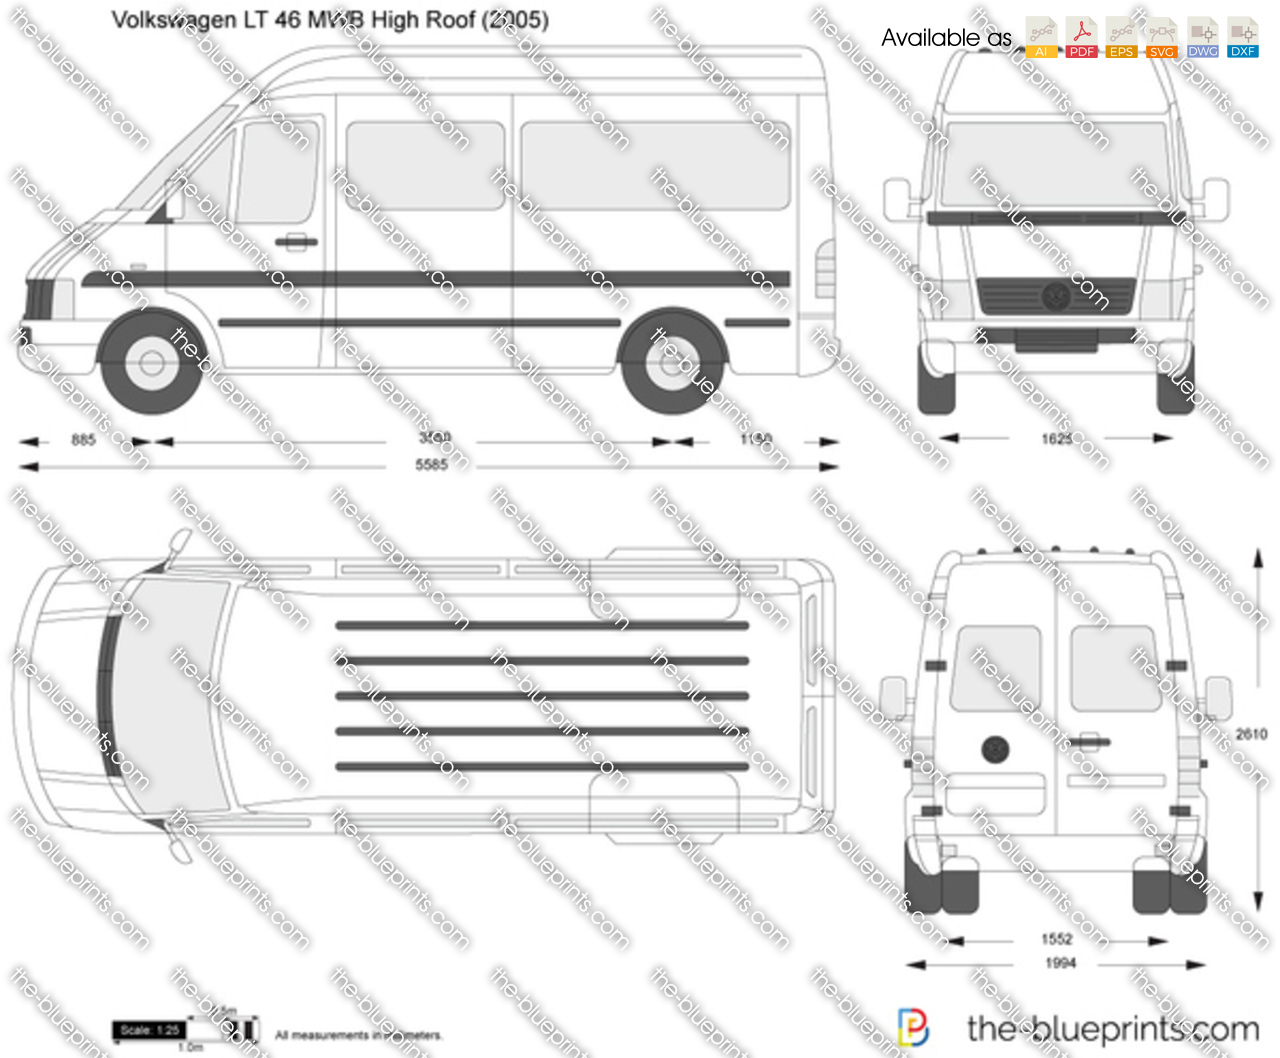 Volkswagen LT 46 MWB High Roof